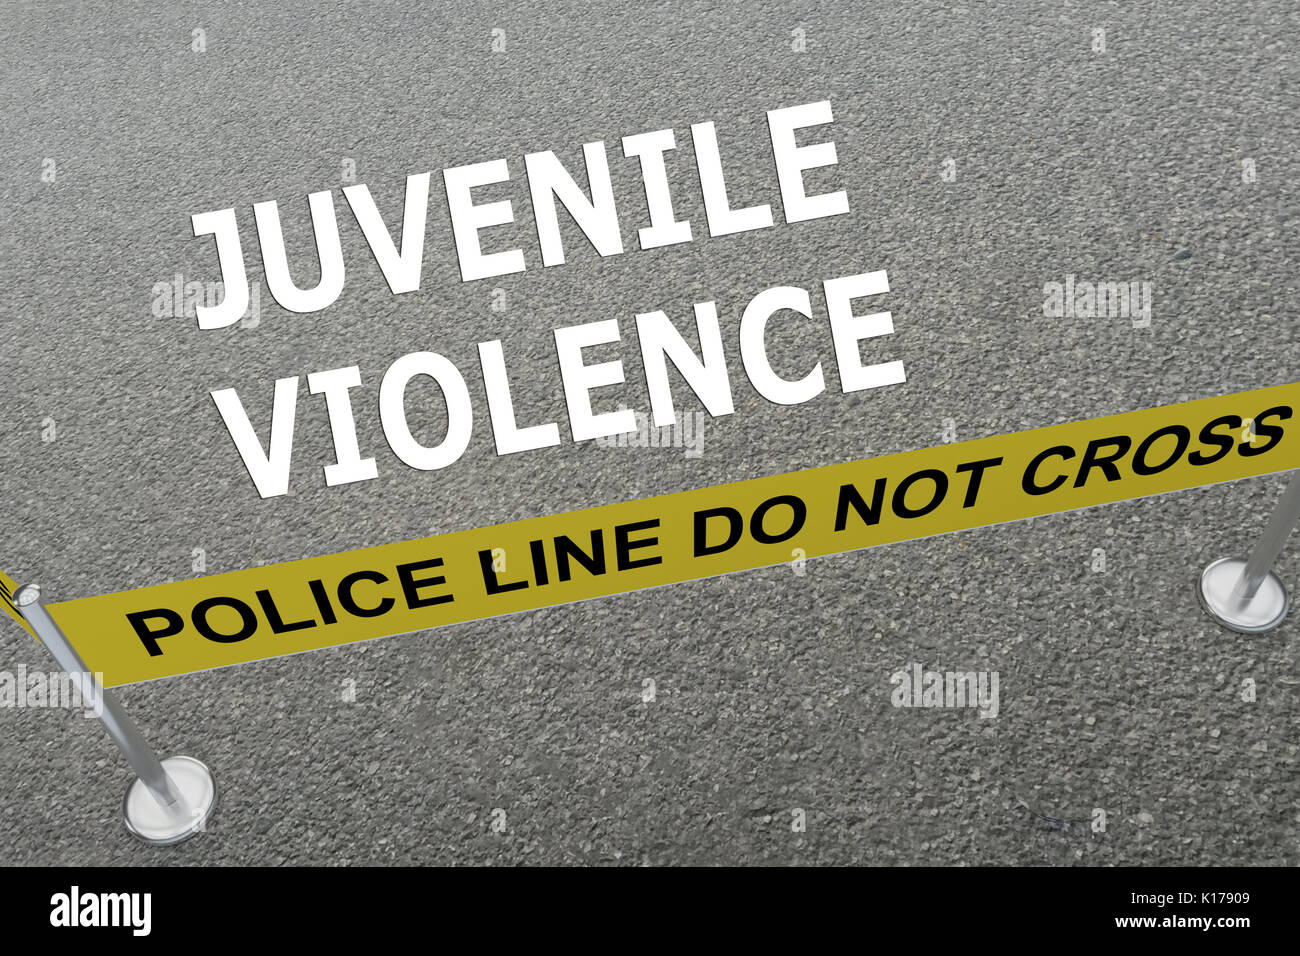 juvenile violence Read chapter introduction: even though youth crime rates have fallen since the mid-1990s, public fear and political rhetoric over the issue have heightene.